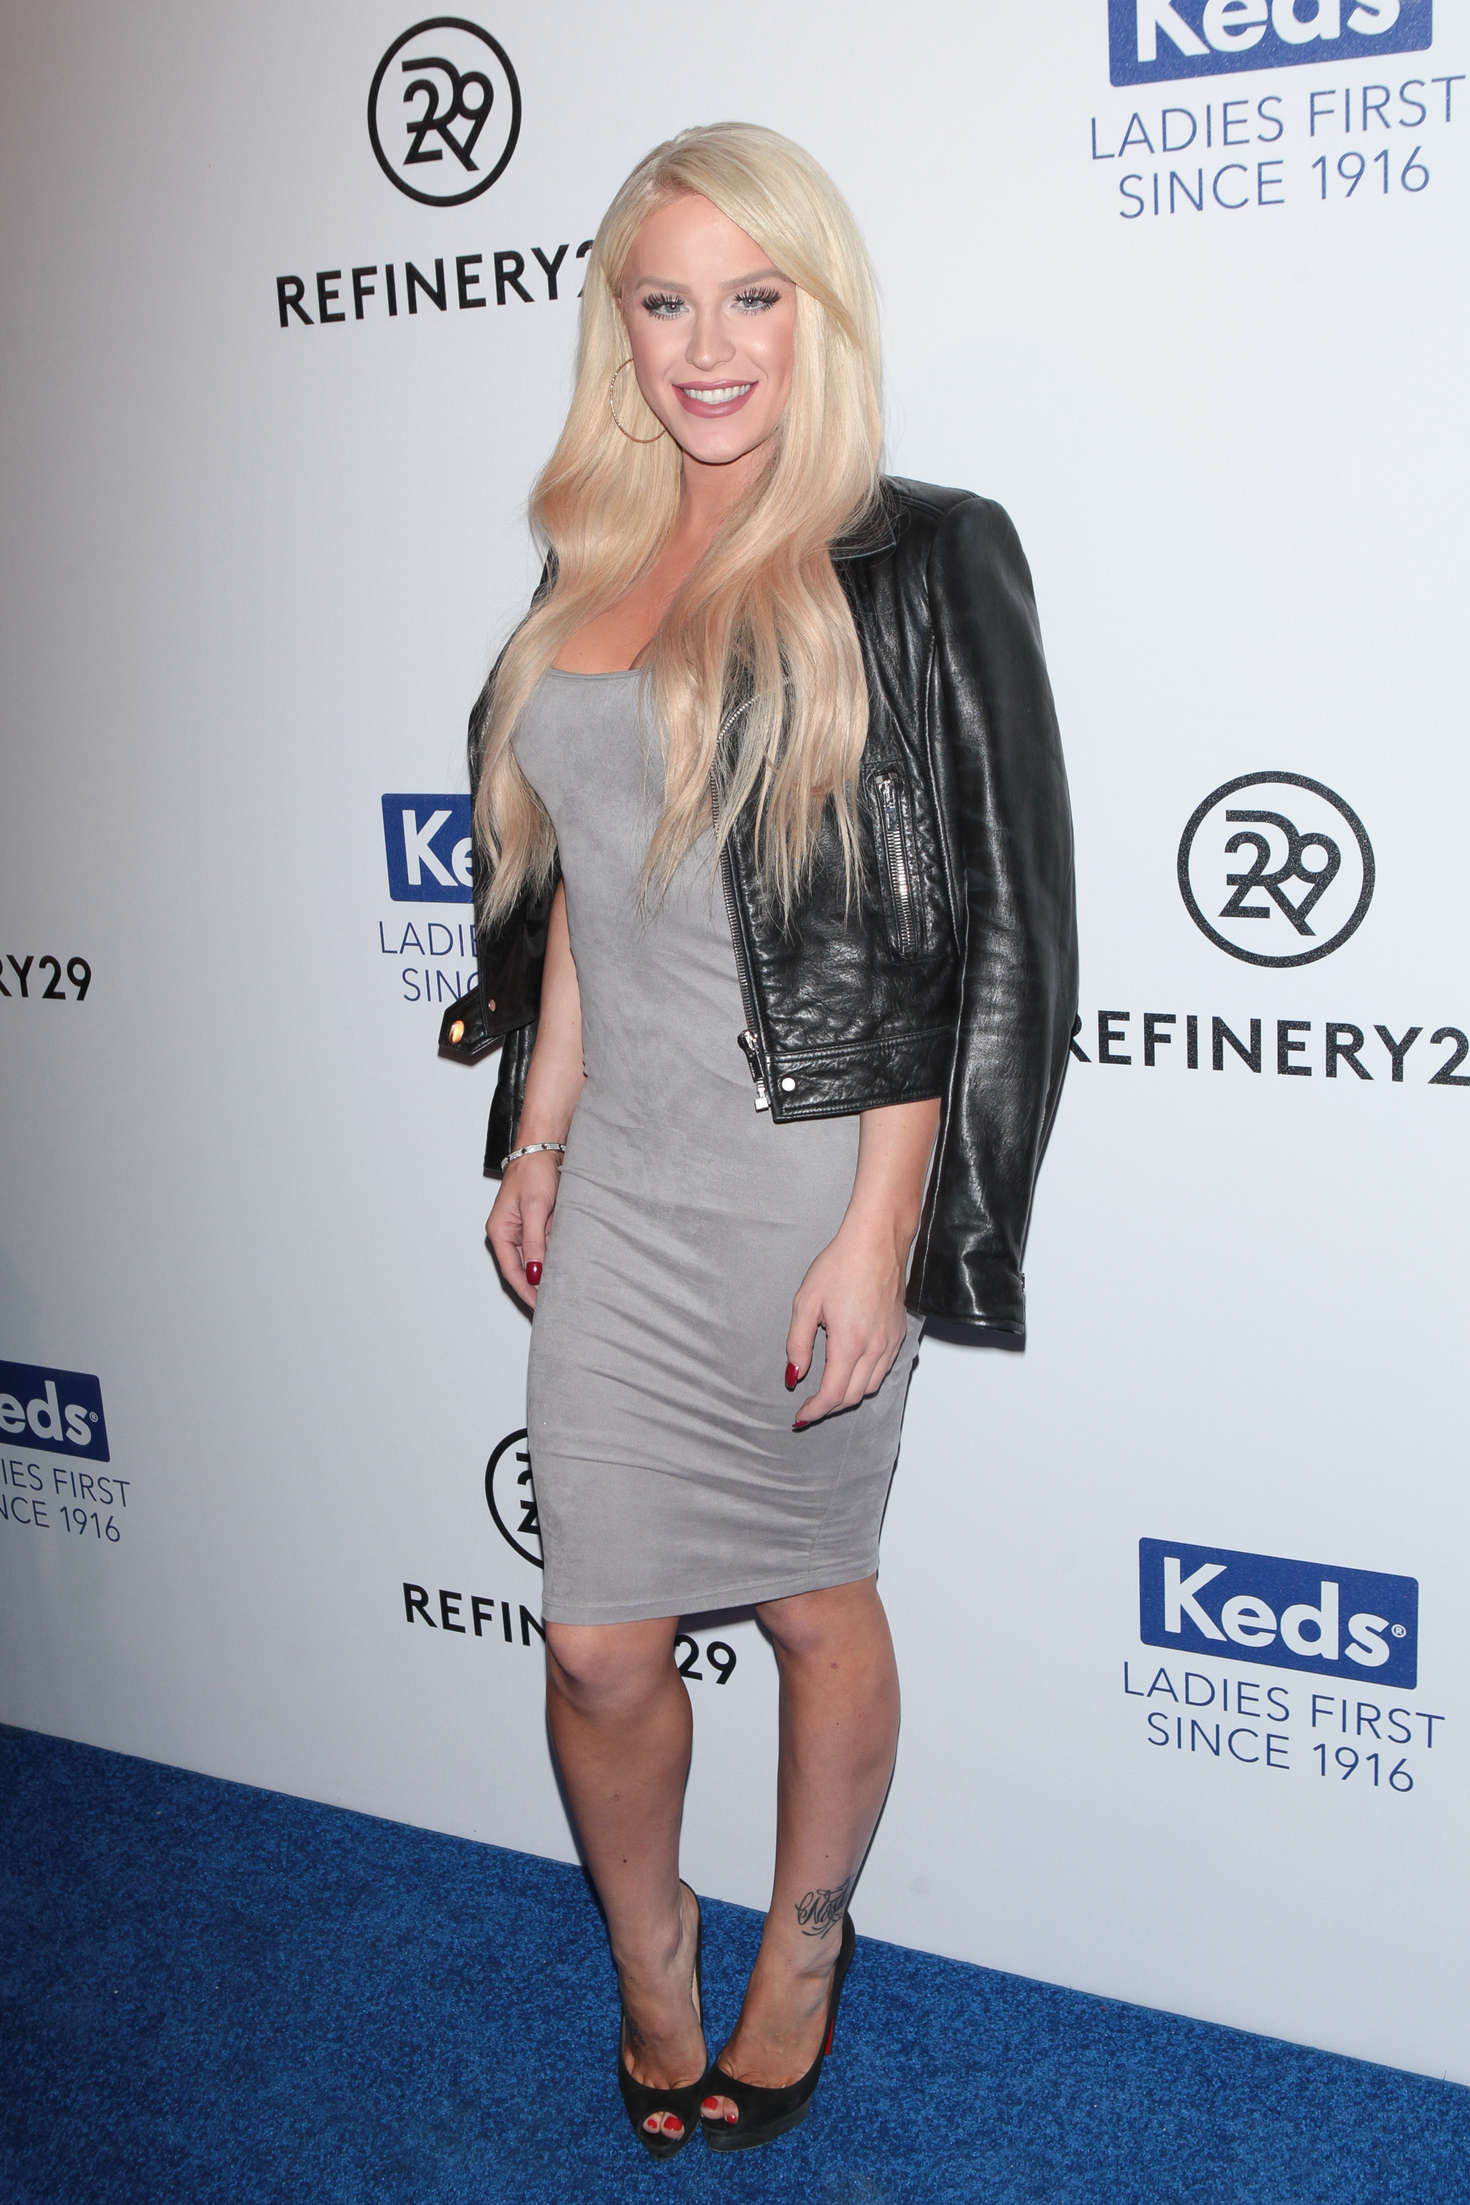 Gigi Gorgeous Keds Centennial Celebration at Studio in New York